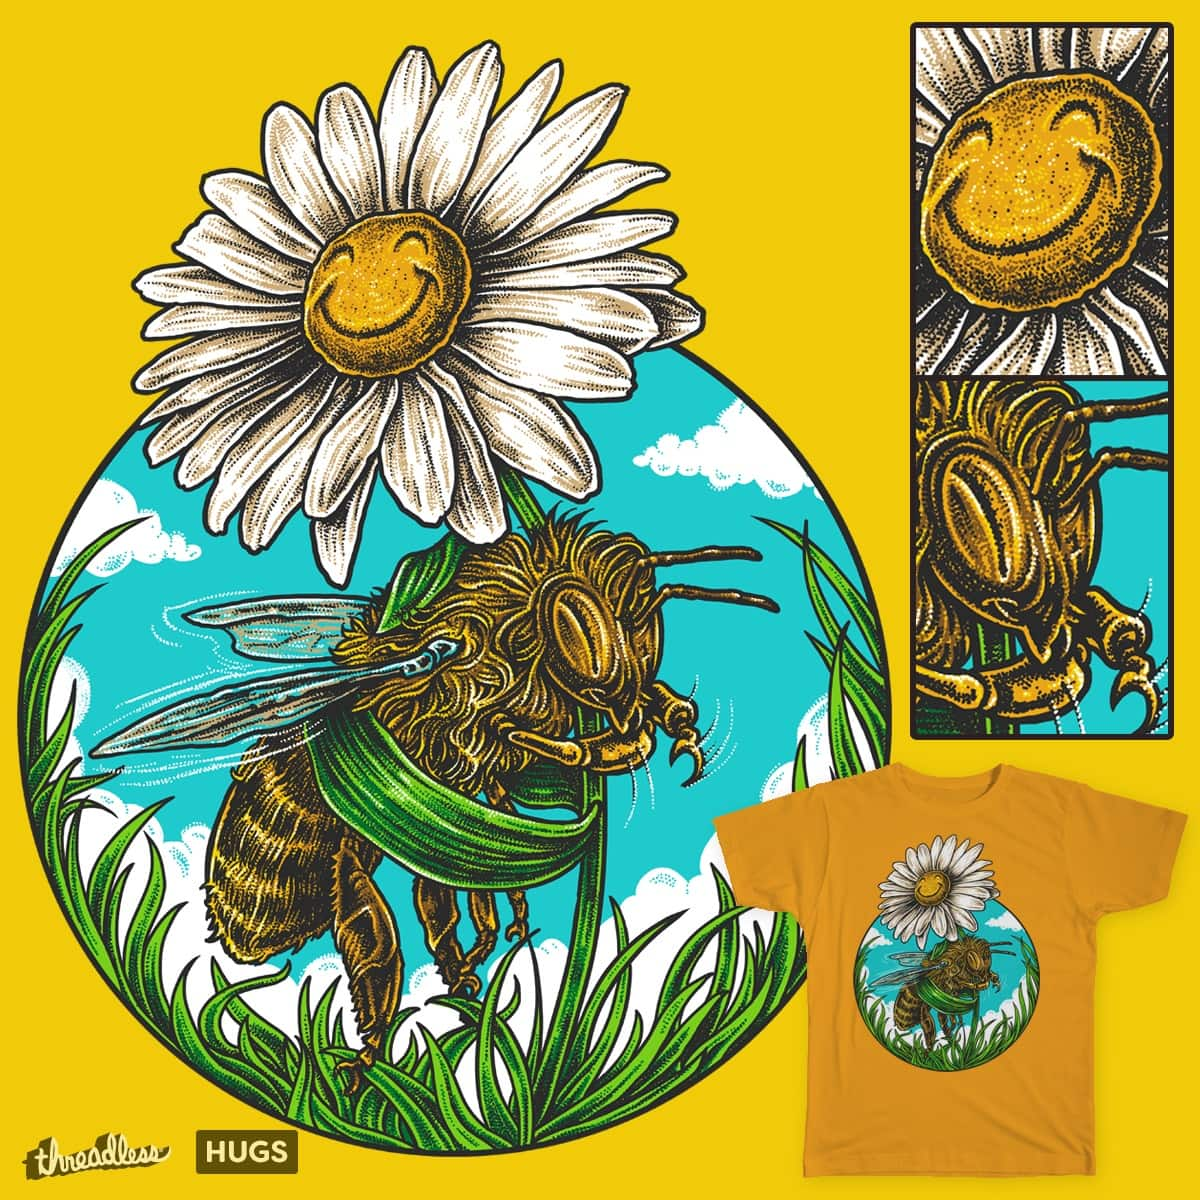 Take Care of One Another by Michele_Nolli on Threadless